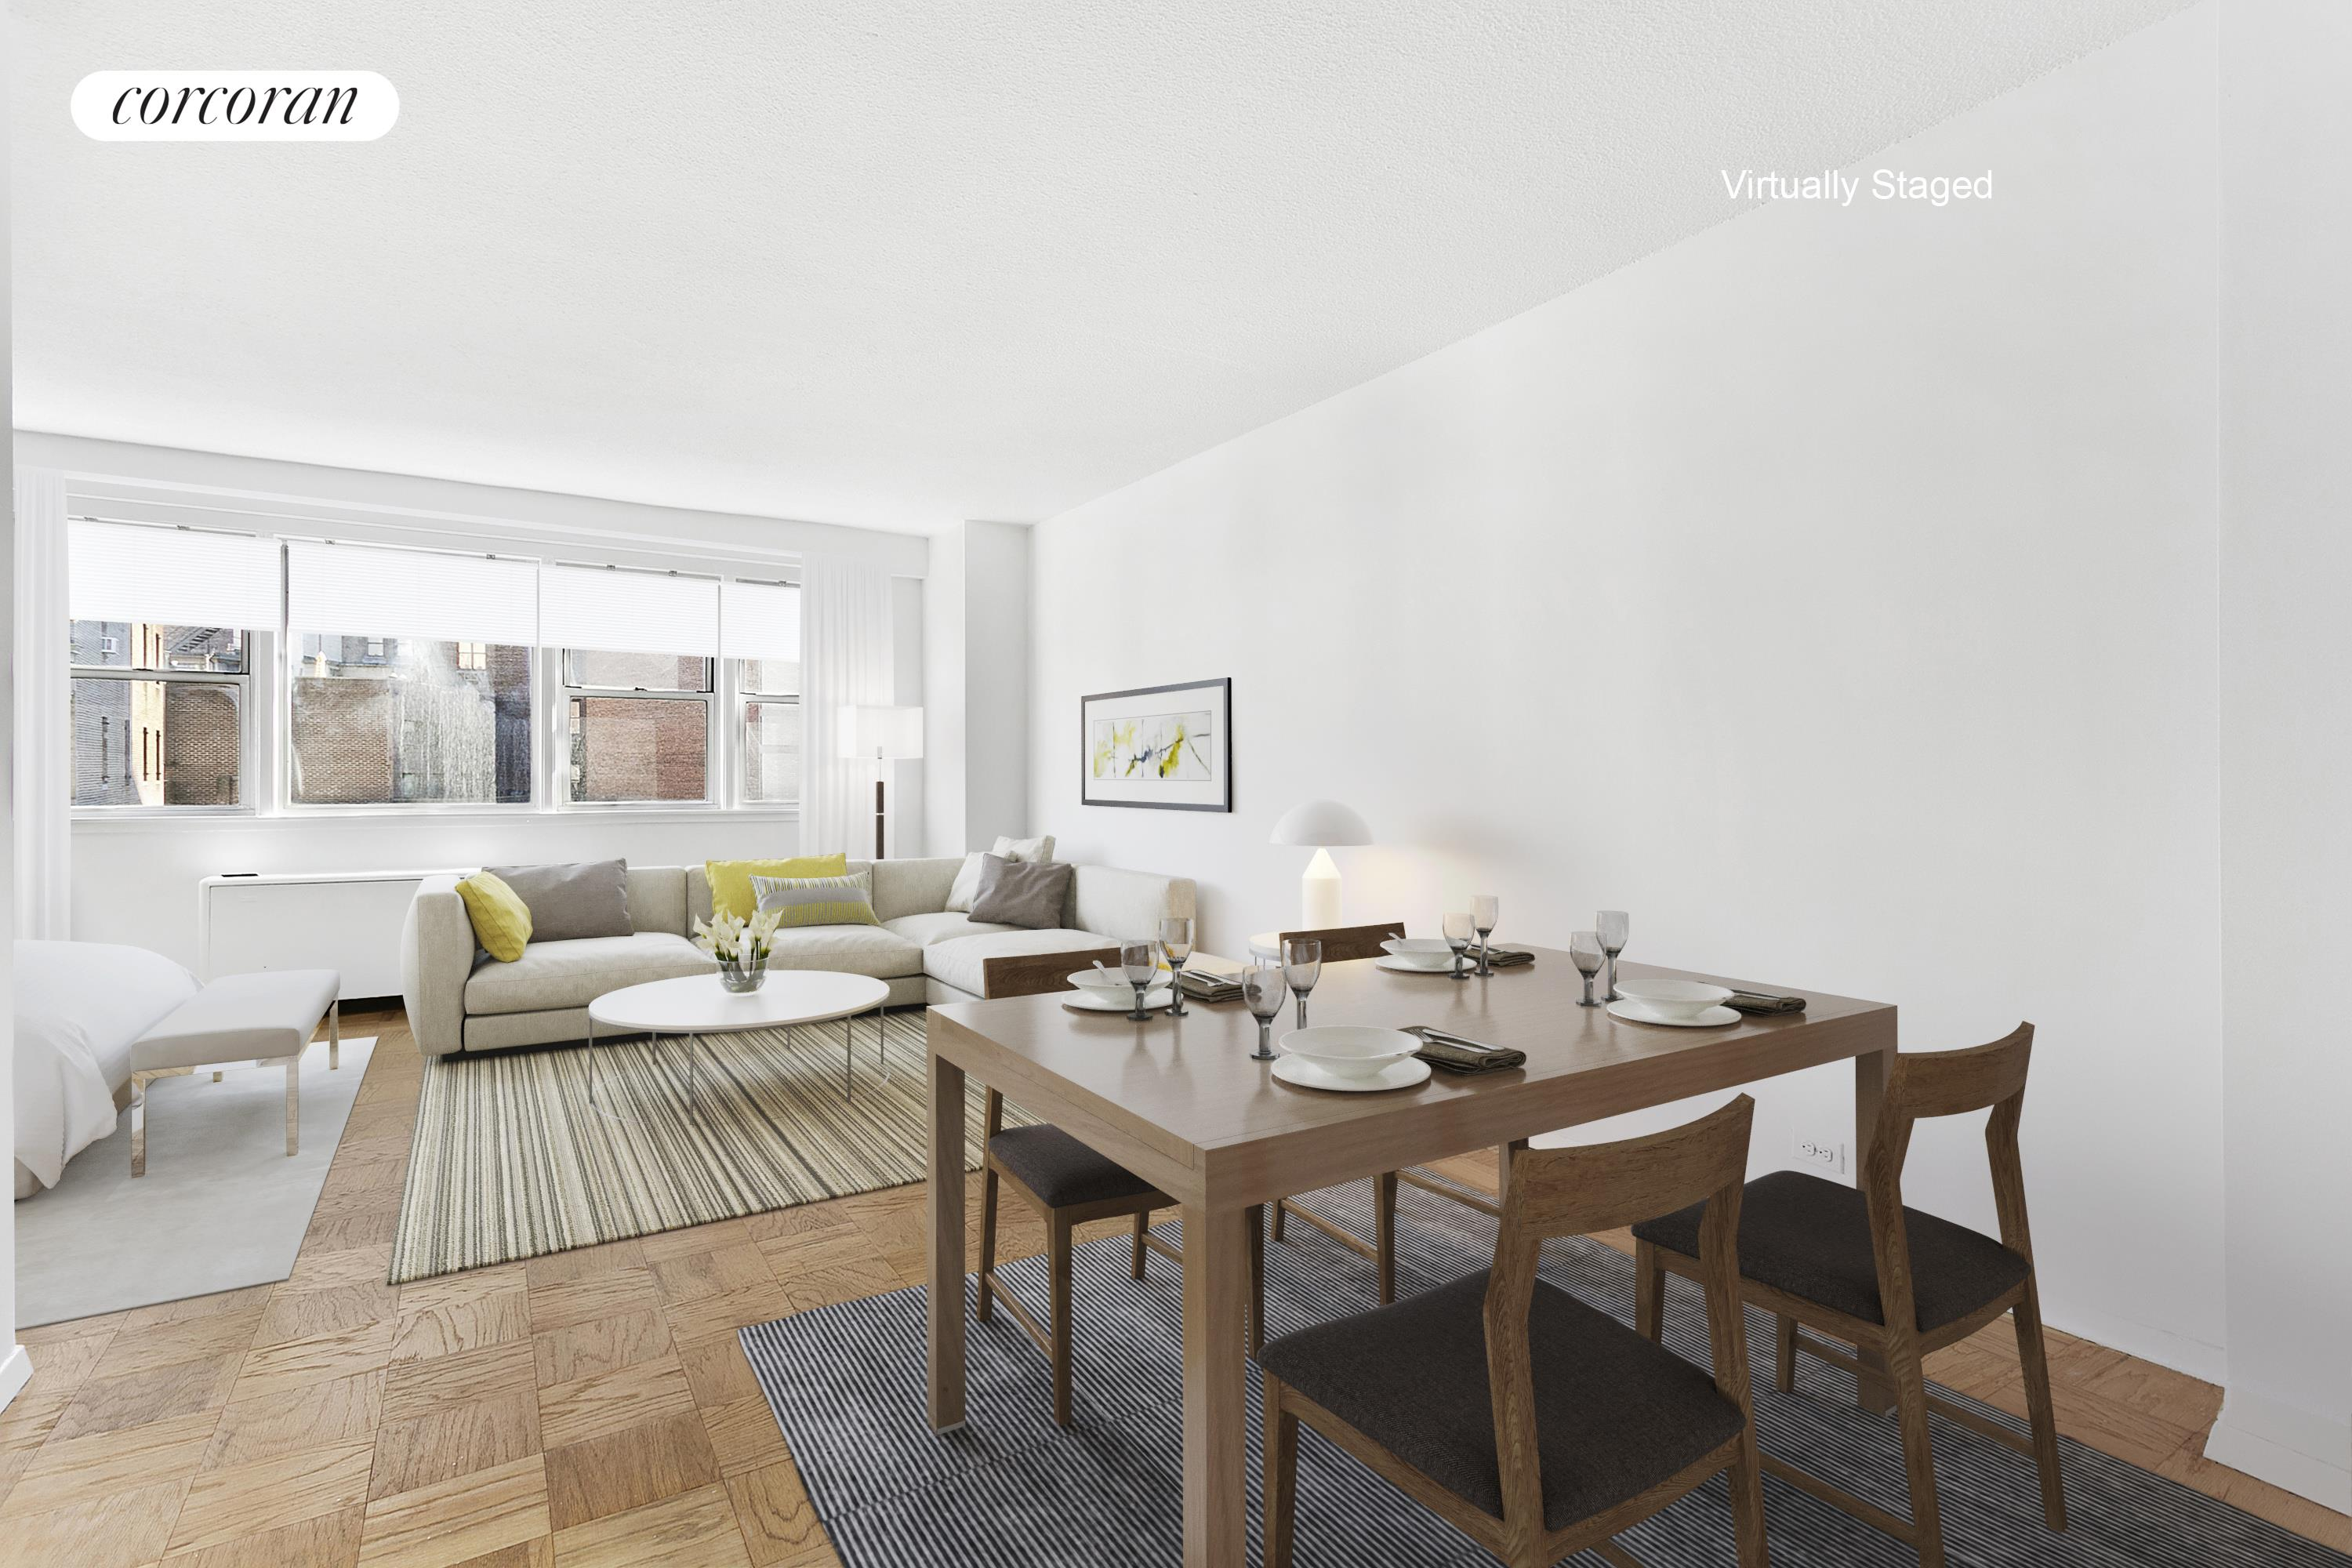 Apartment for sale at 77 East 12th Street, Apt 8E